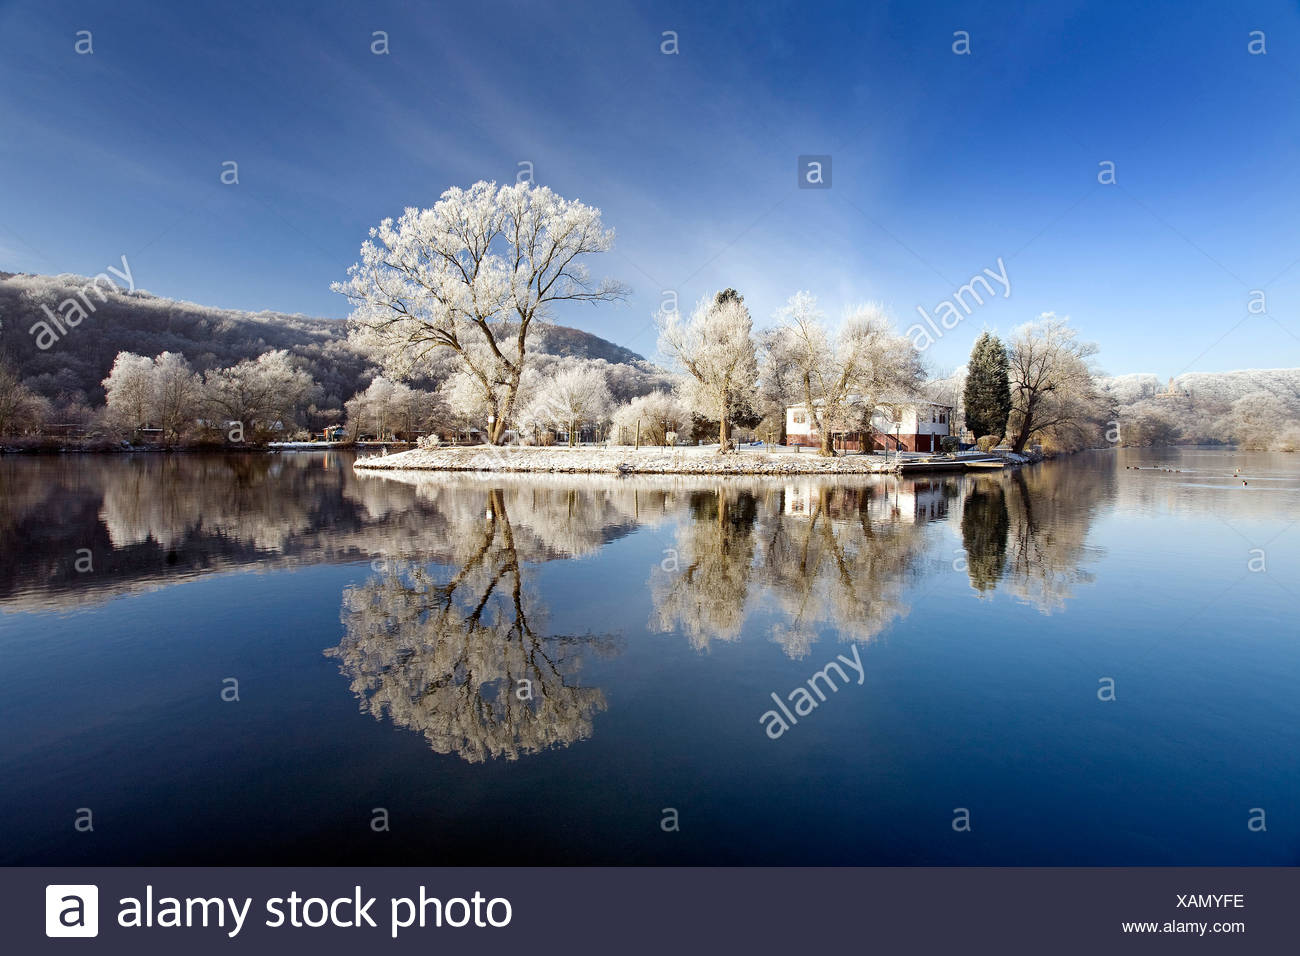 Ruhr valley in winter near Witten with Berger memorial in the background, Germany, North Rhine-Westphalia, Ruhr Area, Hattingen Stock Photo